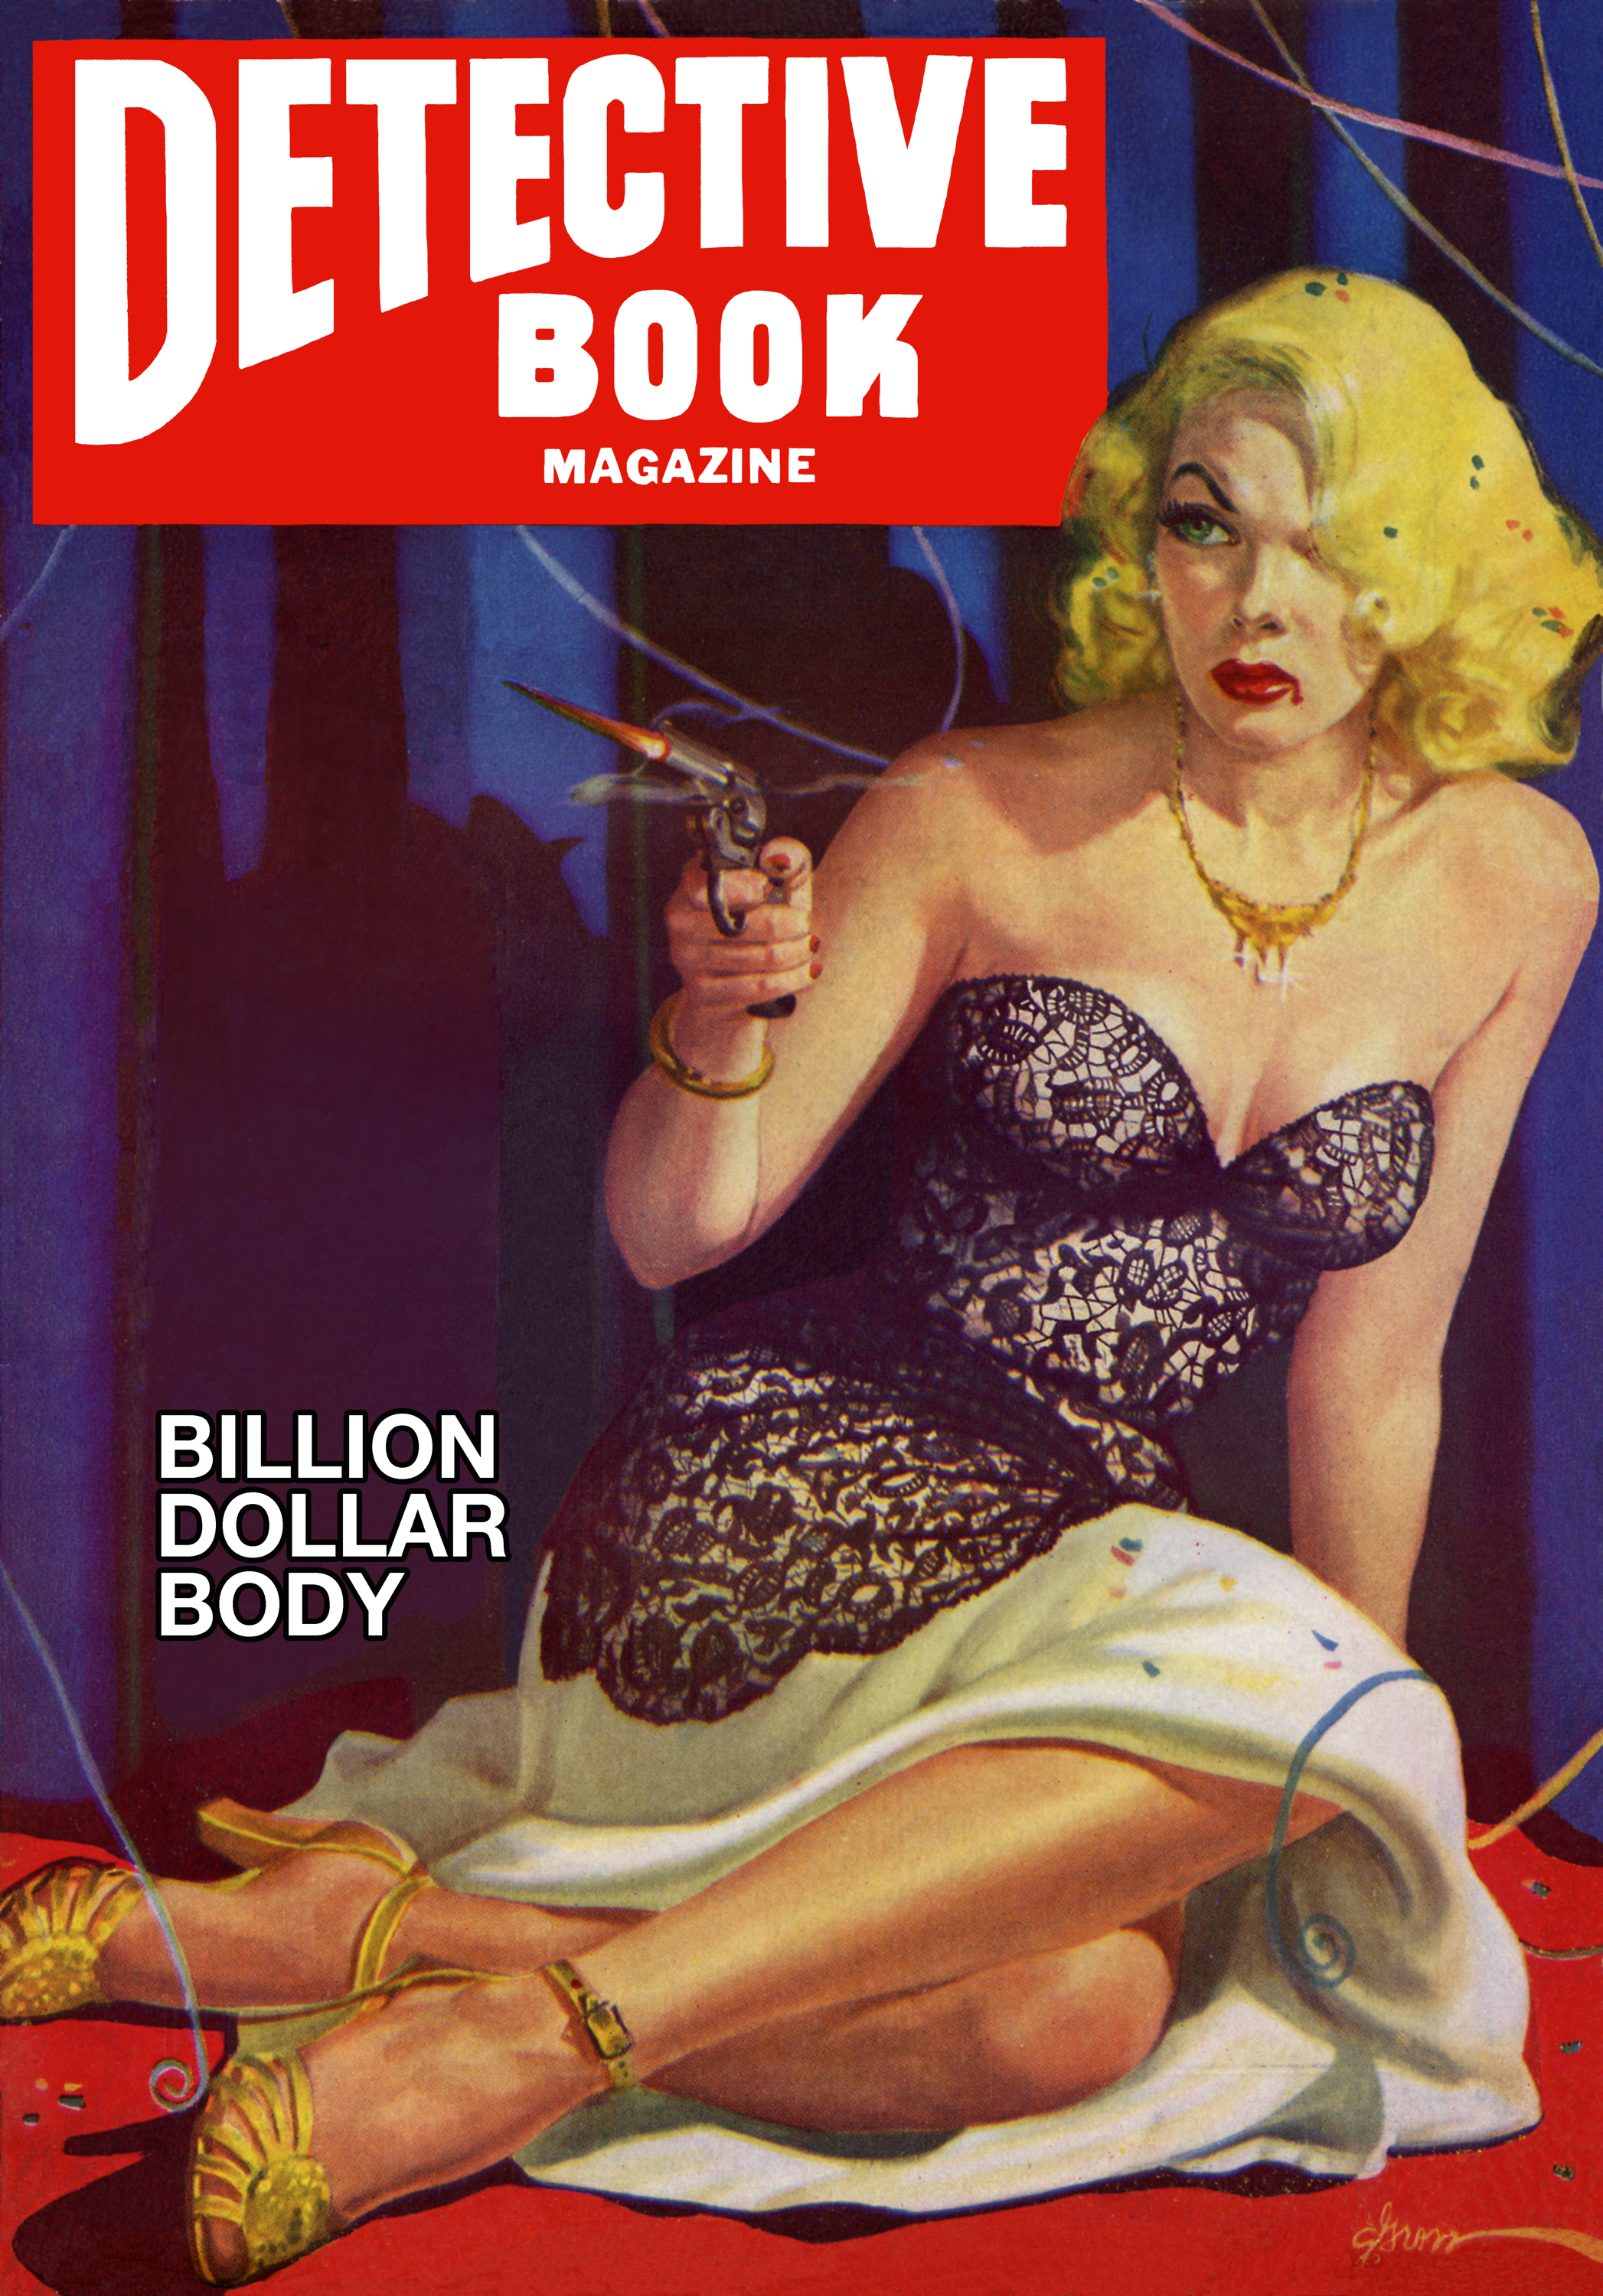 Illustrated book cover showing blonde woman, quite relaxed as she shoots at her unseen attacker.